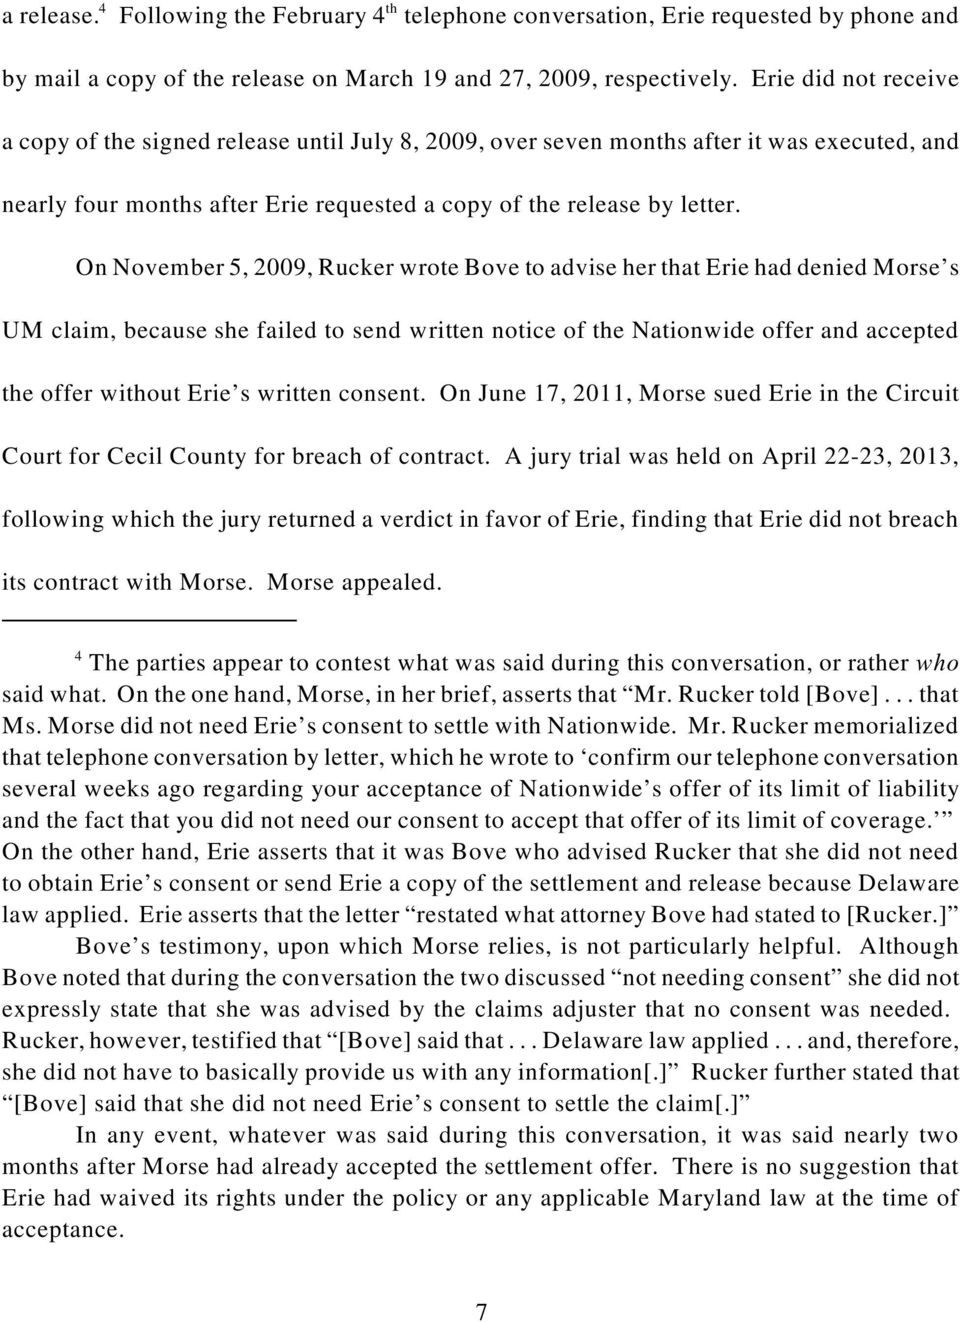 On November 5, 2009, Rucker wrote Bove to advise her that Erie had denied Morse s UM claim, because she failed to send written notice of the Nationwide offer and accepted the offer without Erie s